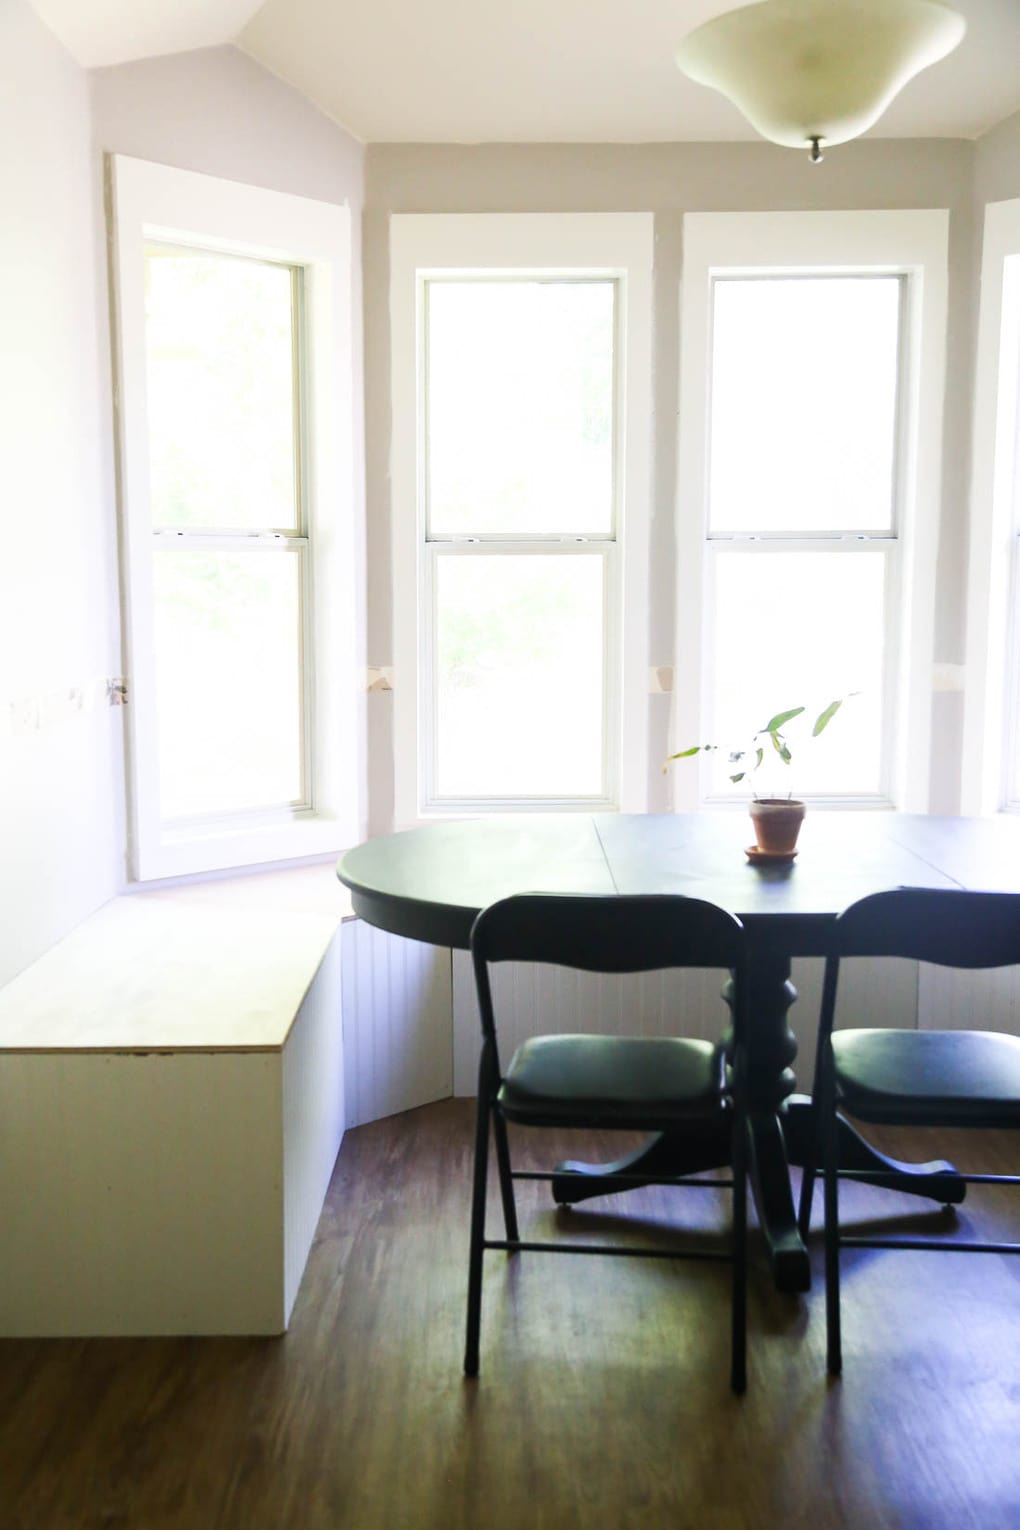 Our new dining room design: Built-in kitchen banquette seating